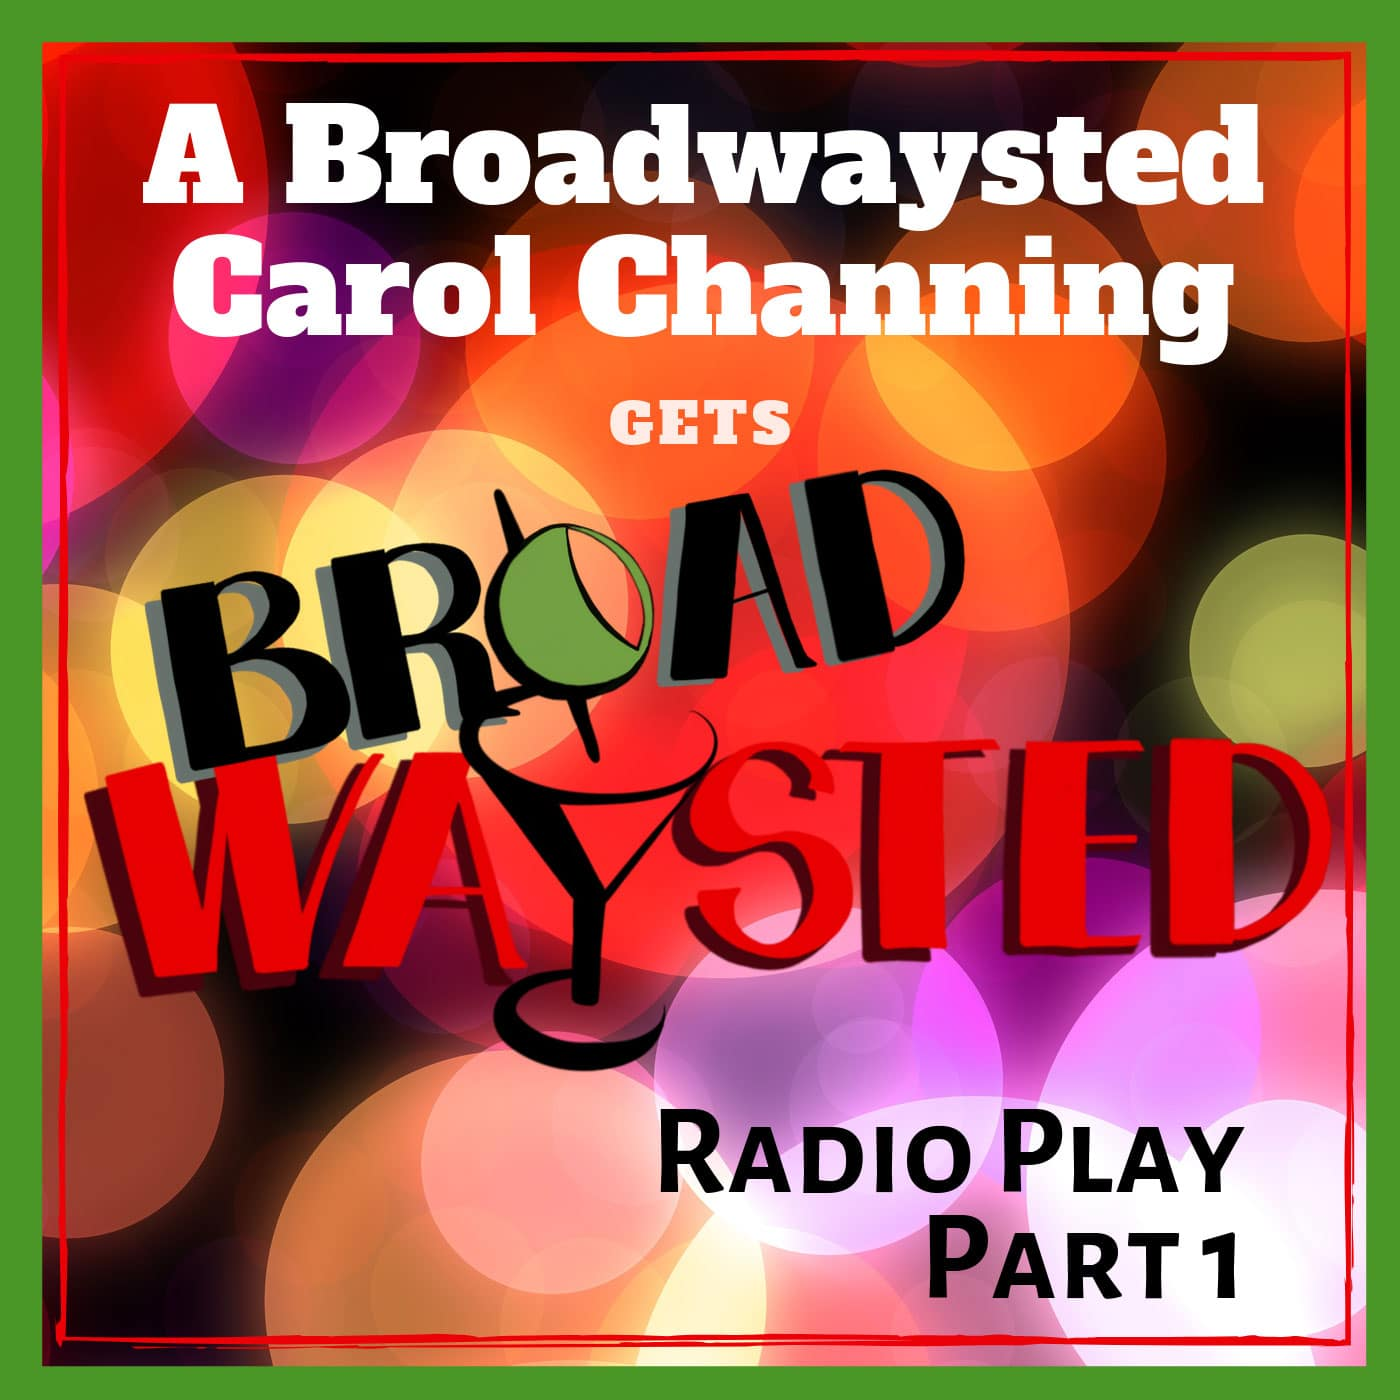 A-Broadwaysted-Carol-Channing-Pt-1